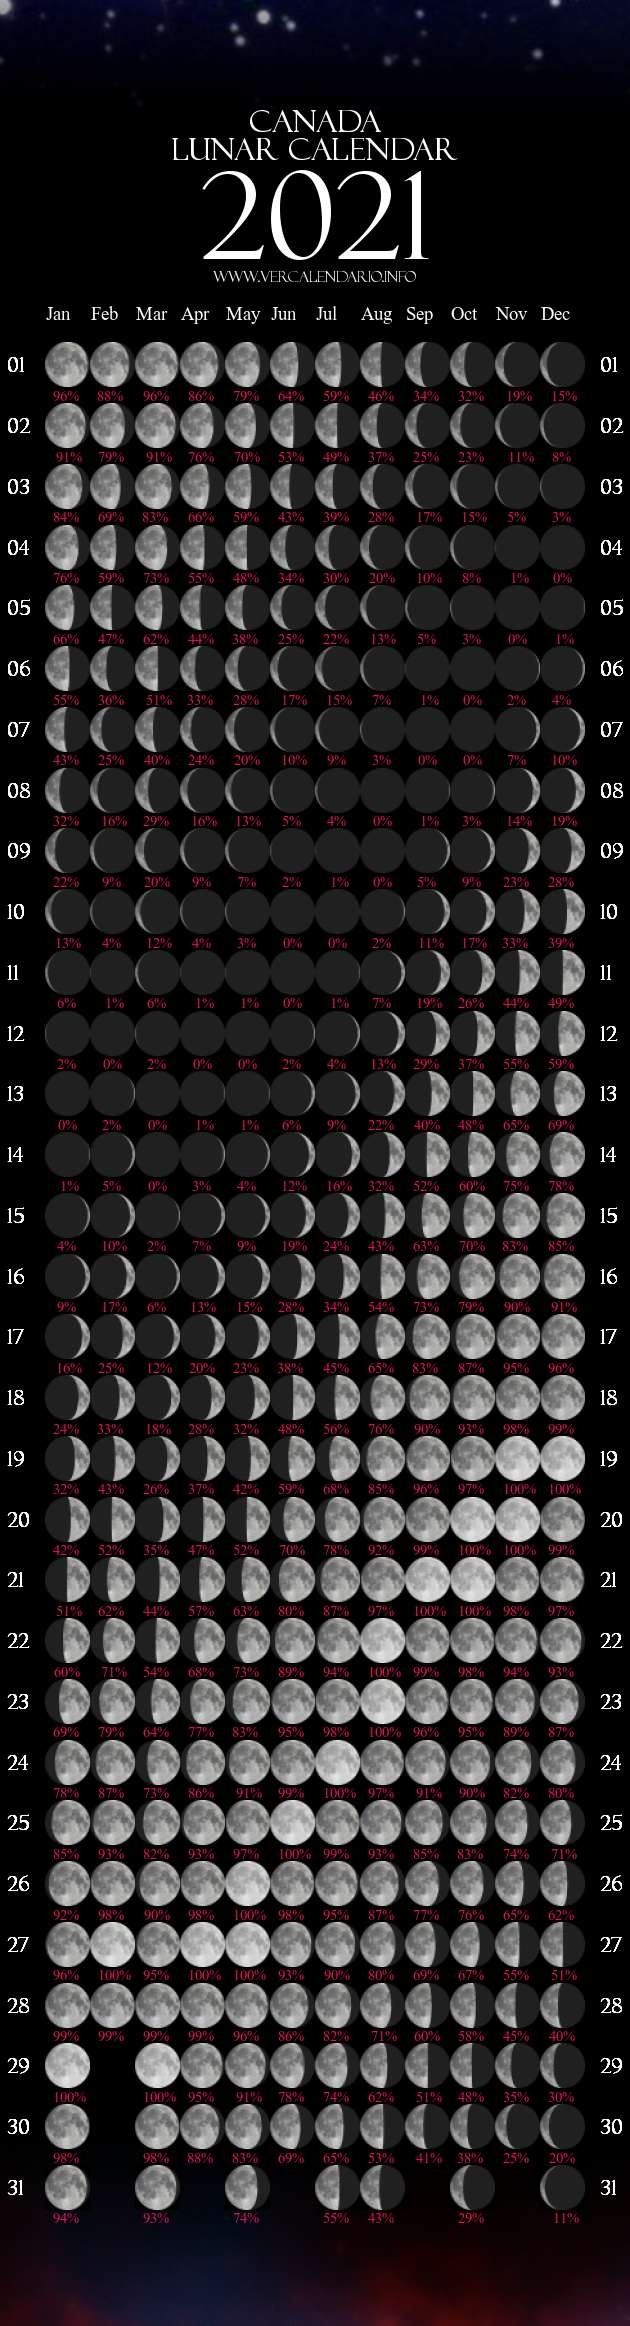 Take August Calendar 2021 With Moon Cycle